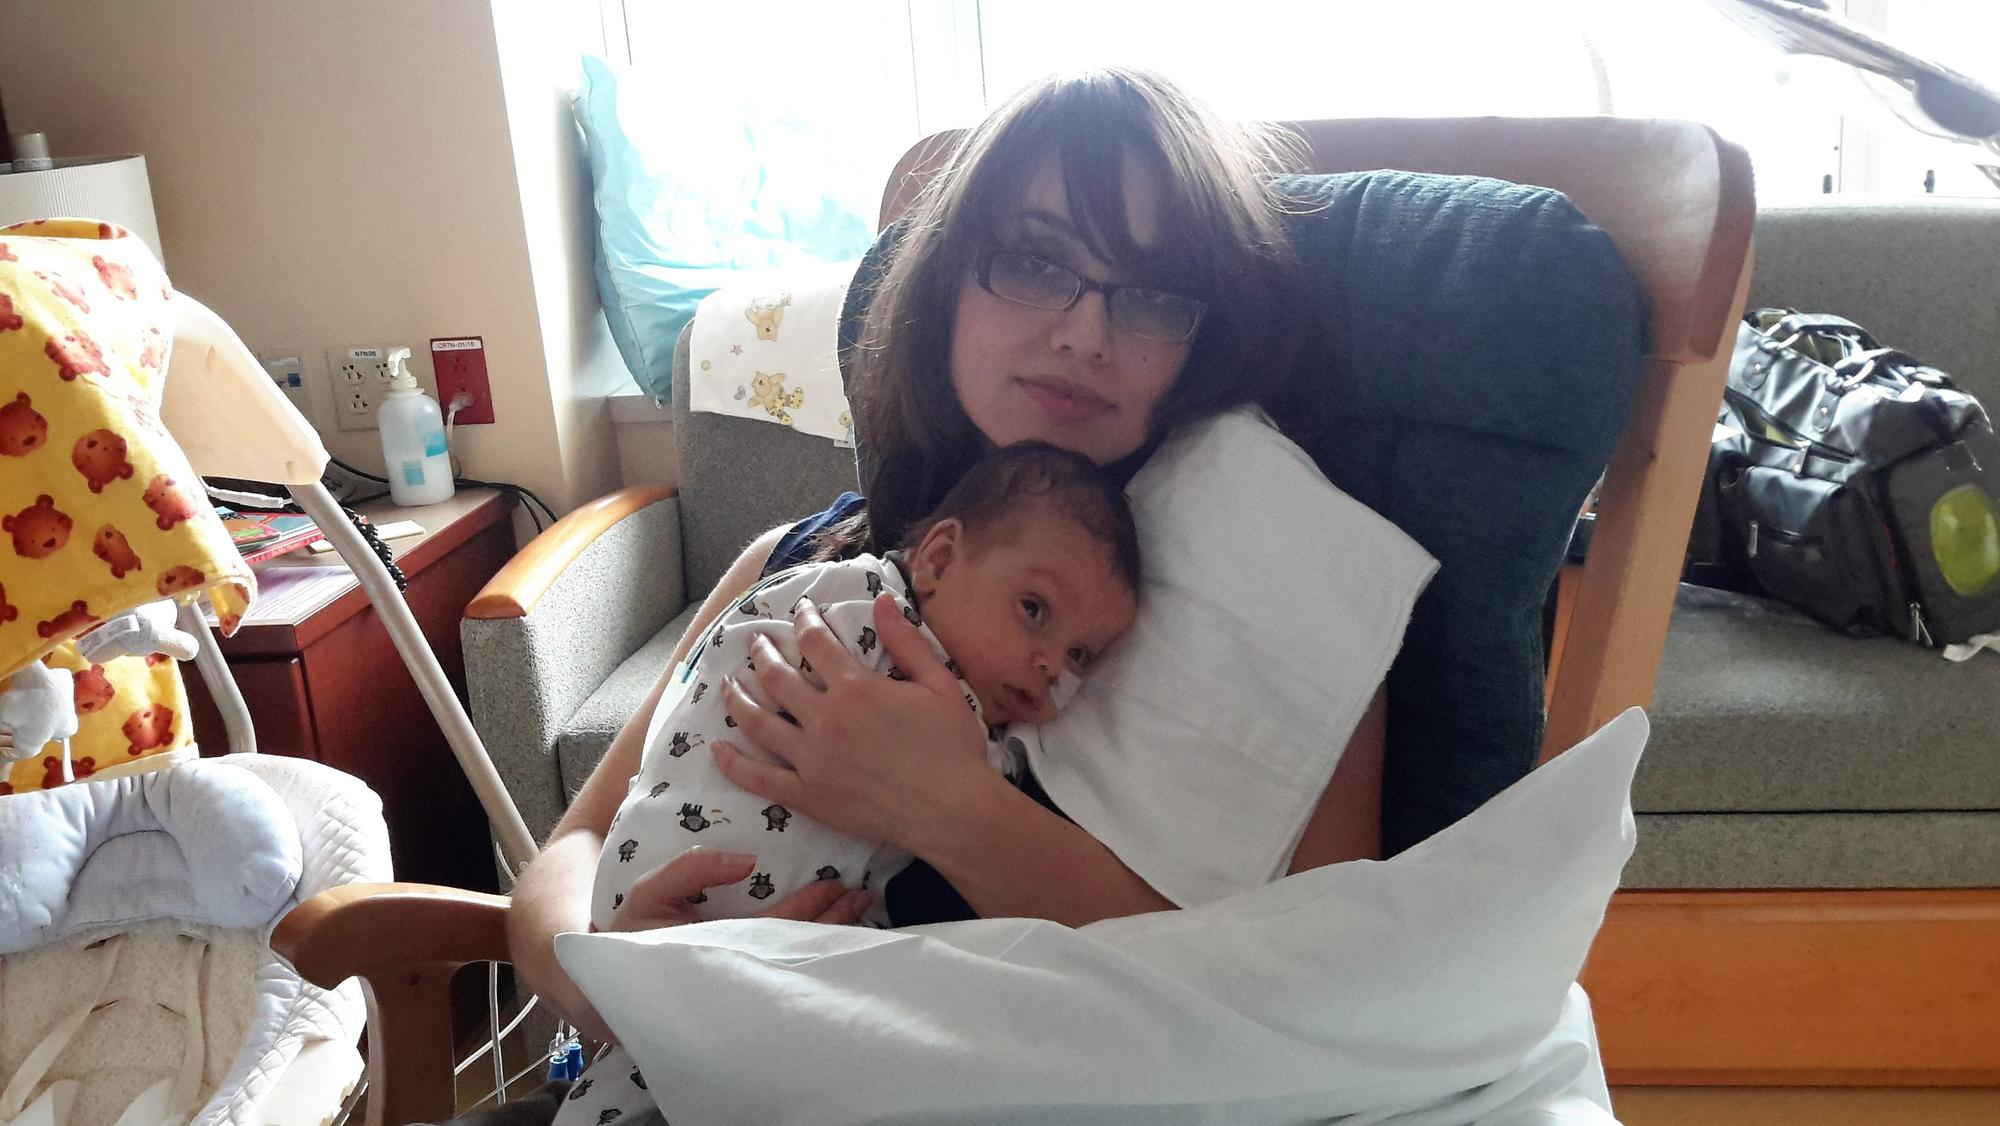 This mother felt relieved when her 3-month-old daughter died of starvation